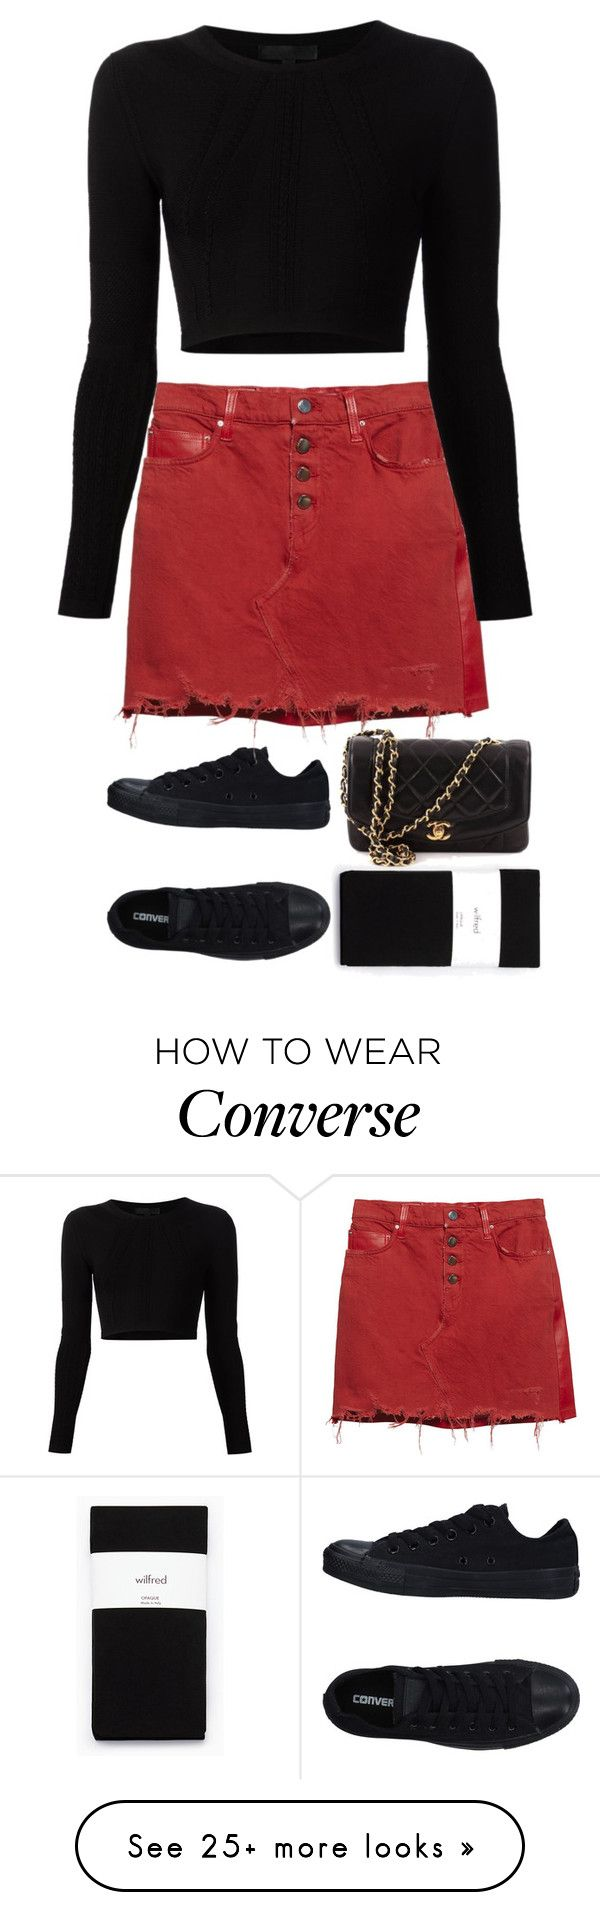 """Untitled #792"" by ayalikeschicken on Polyvore featuring Converse, AMIRI, Cushnie Et Ochs and Chanel"